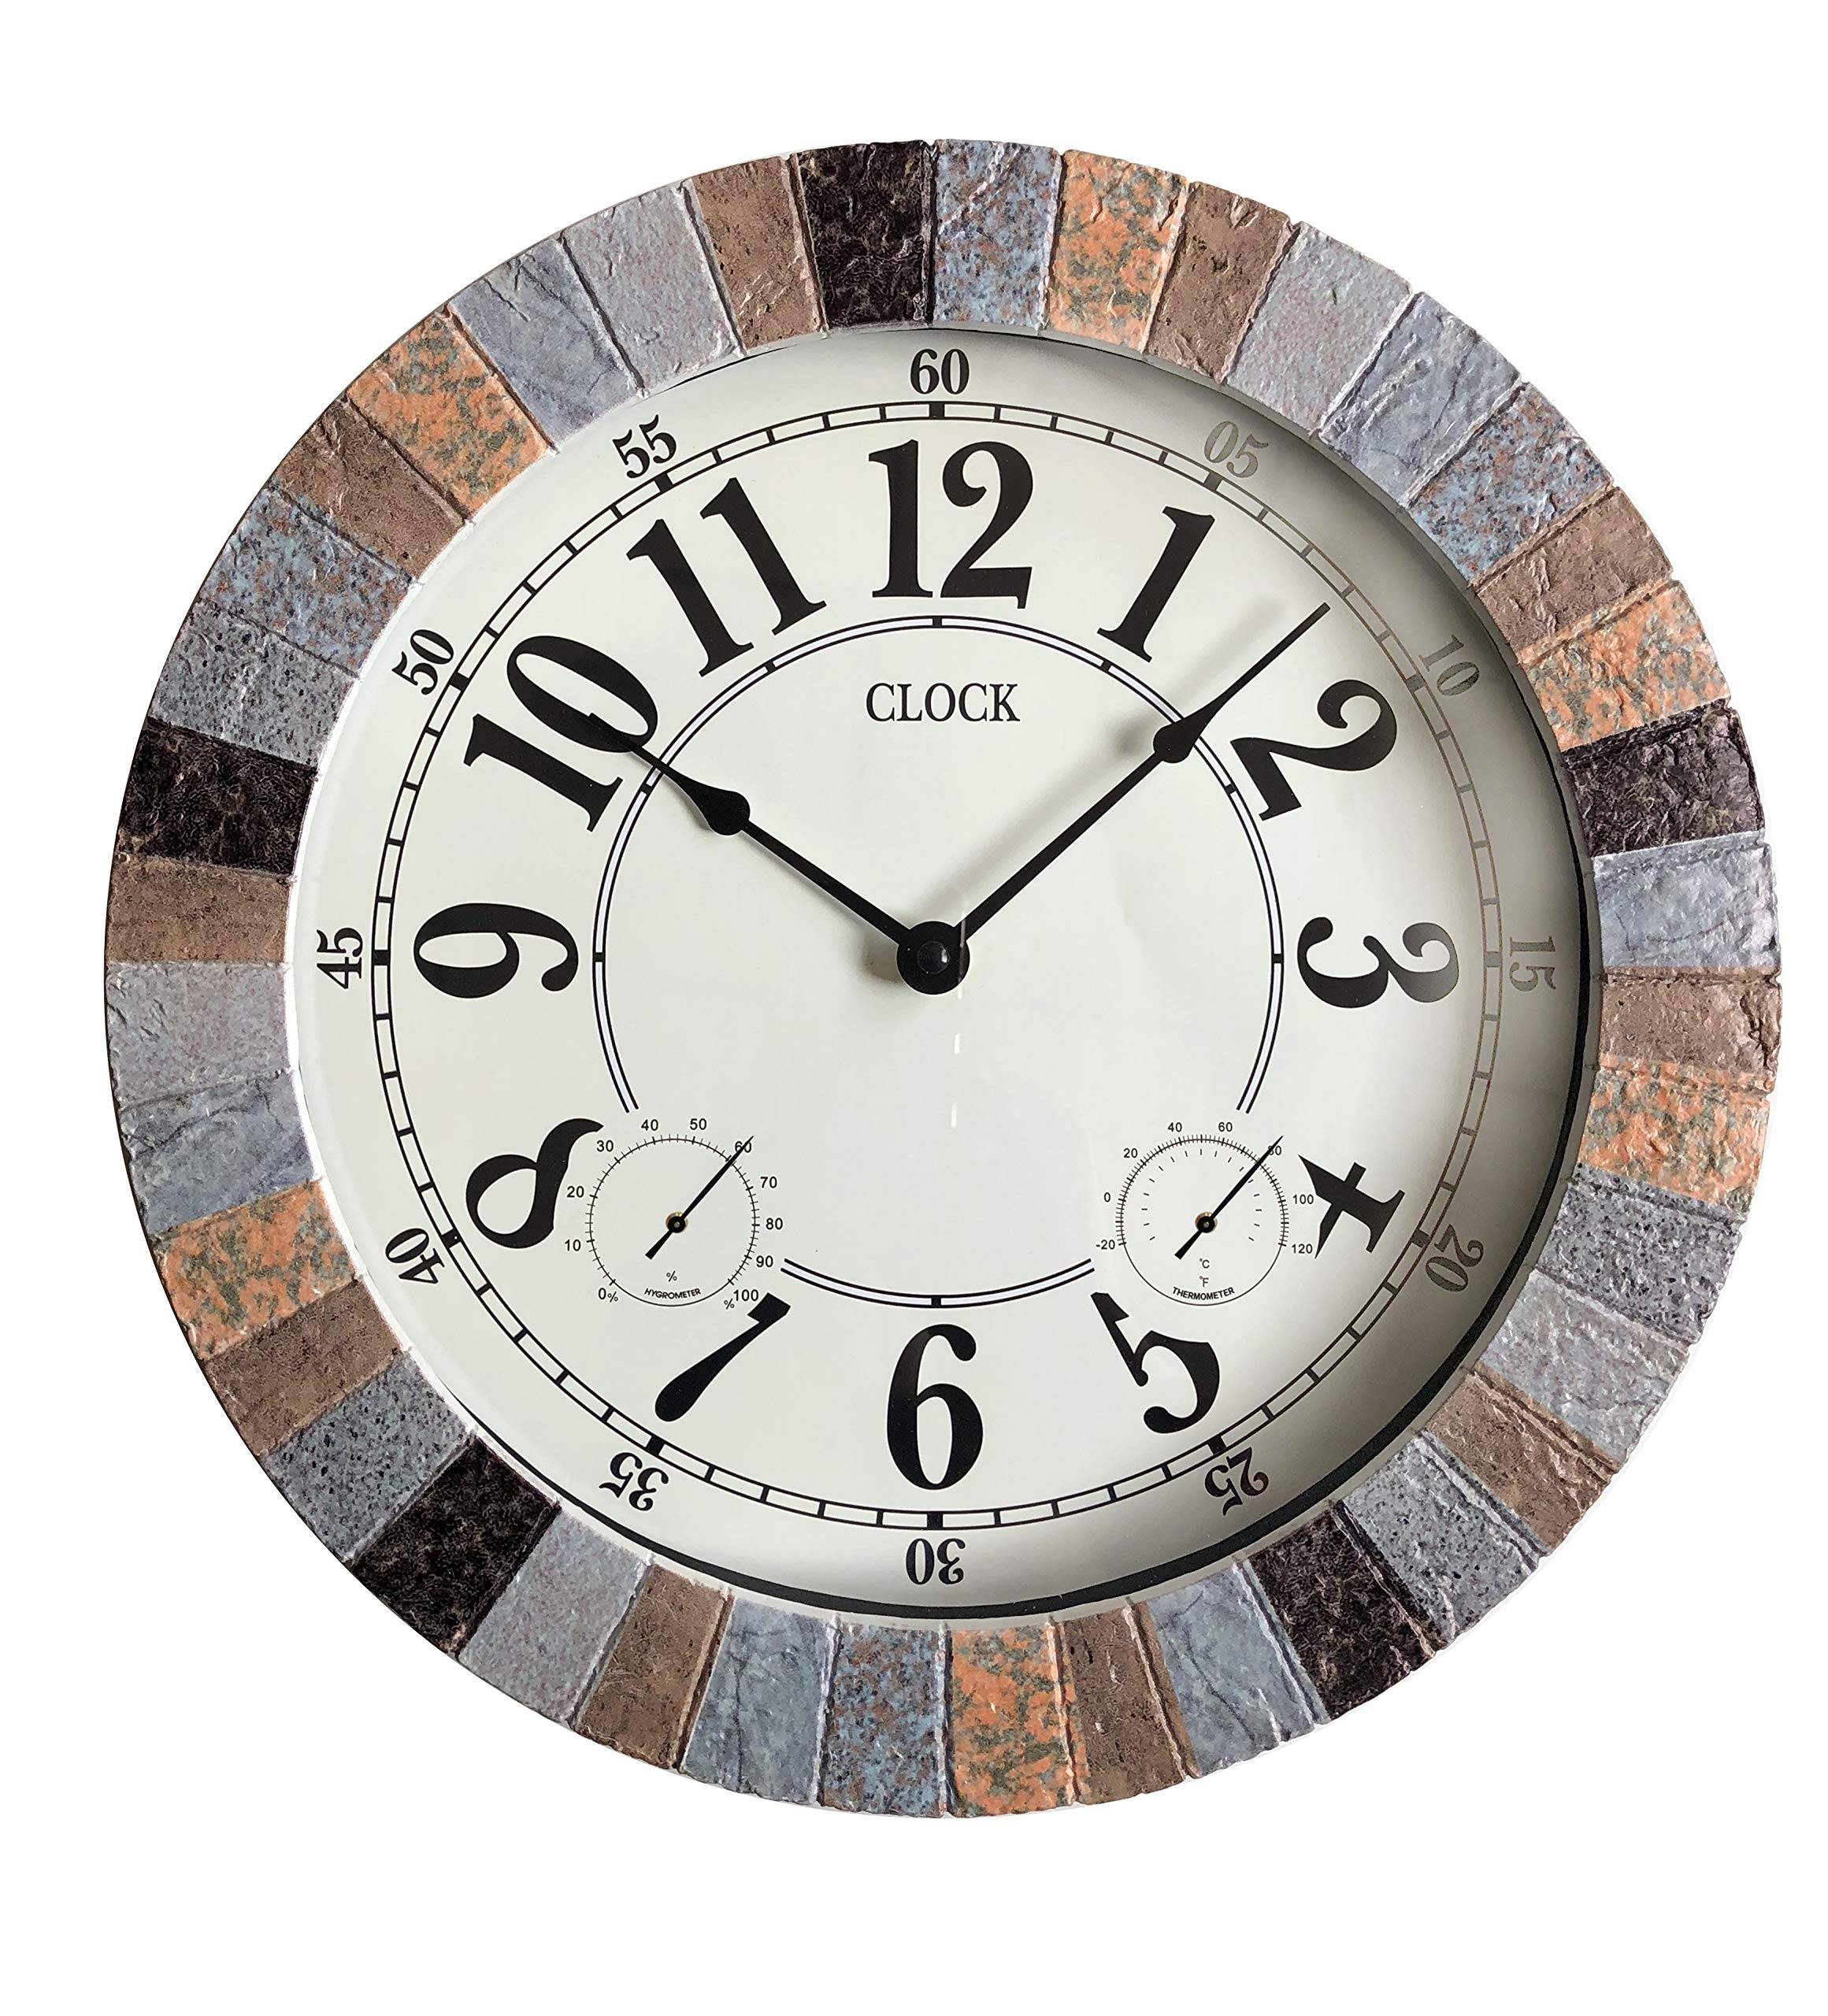 Backyard Expressions 914932 Indoor/Outdoor Clock, Gray, Black, Brown